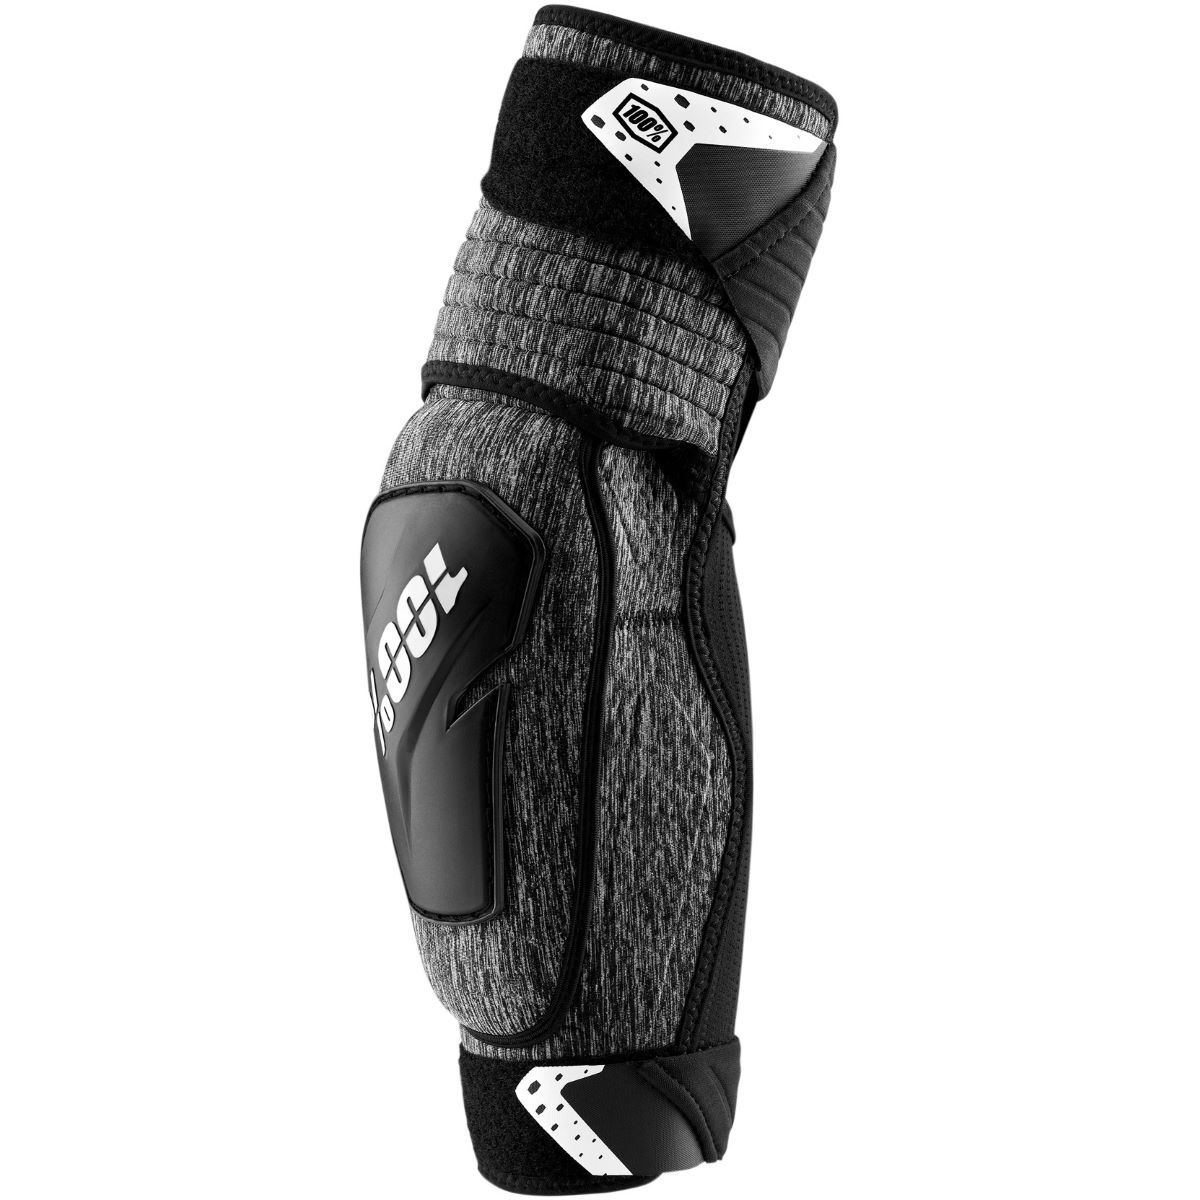 100% 100% Fortis Elbow Guard   Elbow Pads